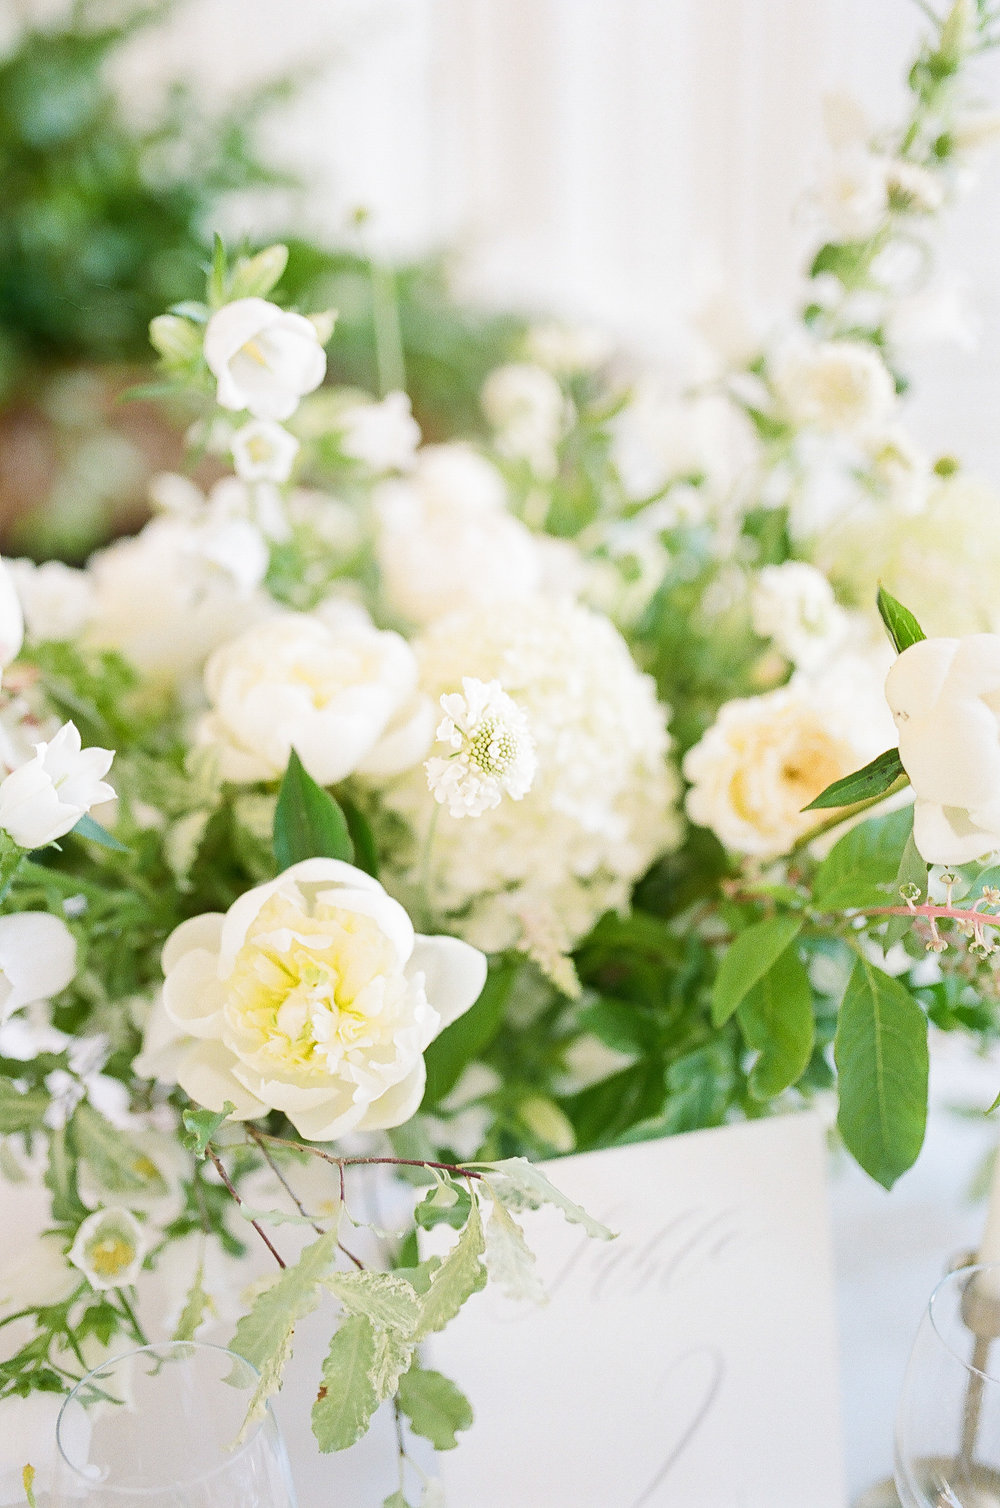 france-wedding-florist-foraged-floral-peonies-and-garden-roses-for-white-wedding-in-paris.jpg